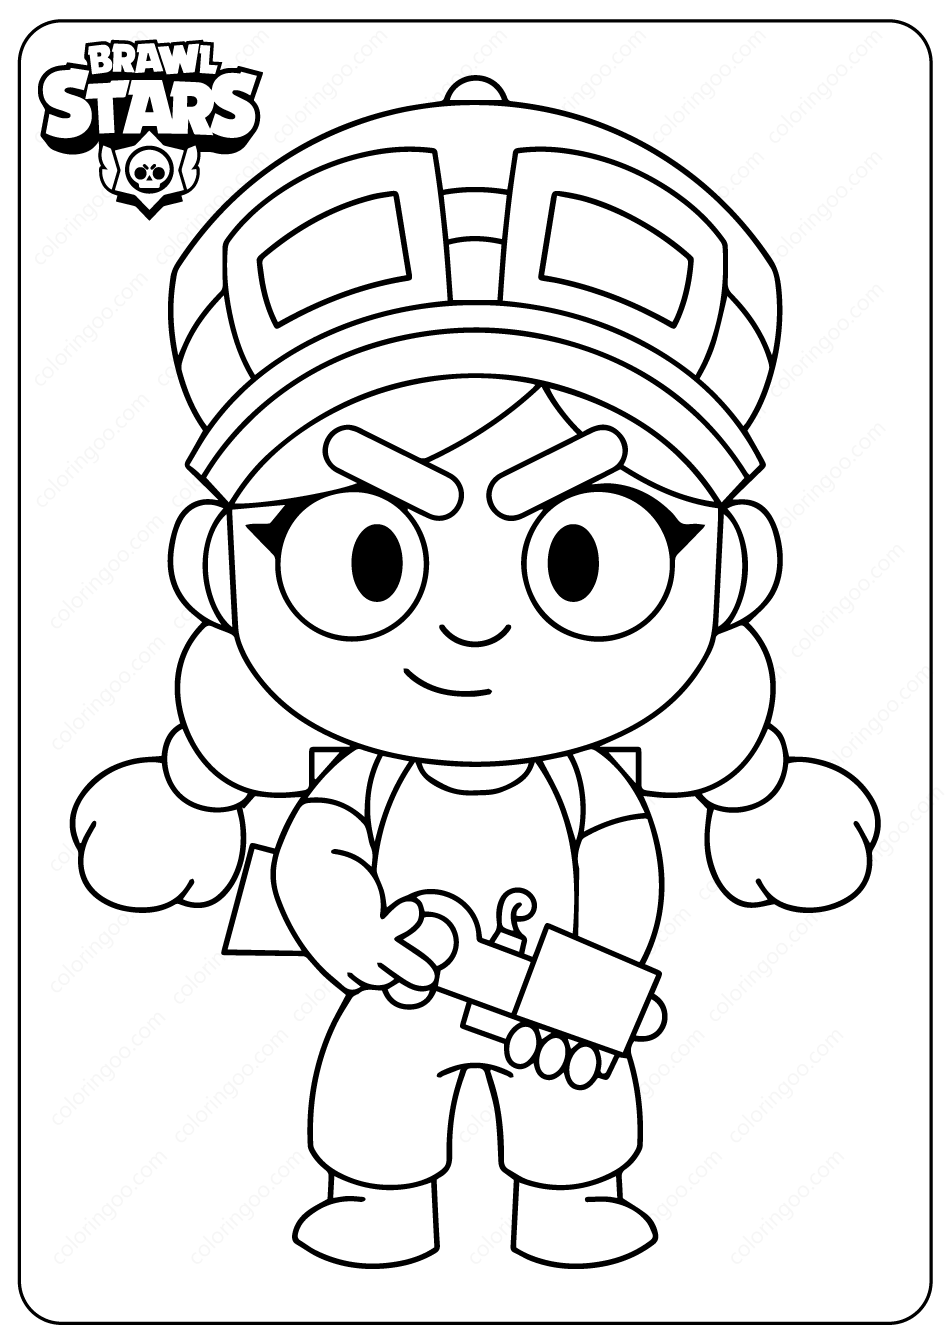 Printable Brawl Stars Jessie Coloring Pages Star Coloring Pages Coloring Pages Star Illustration